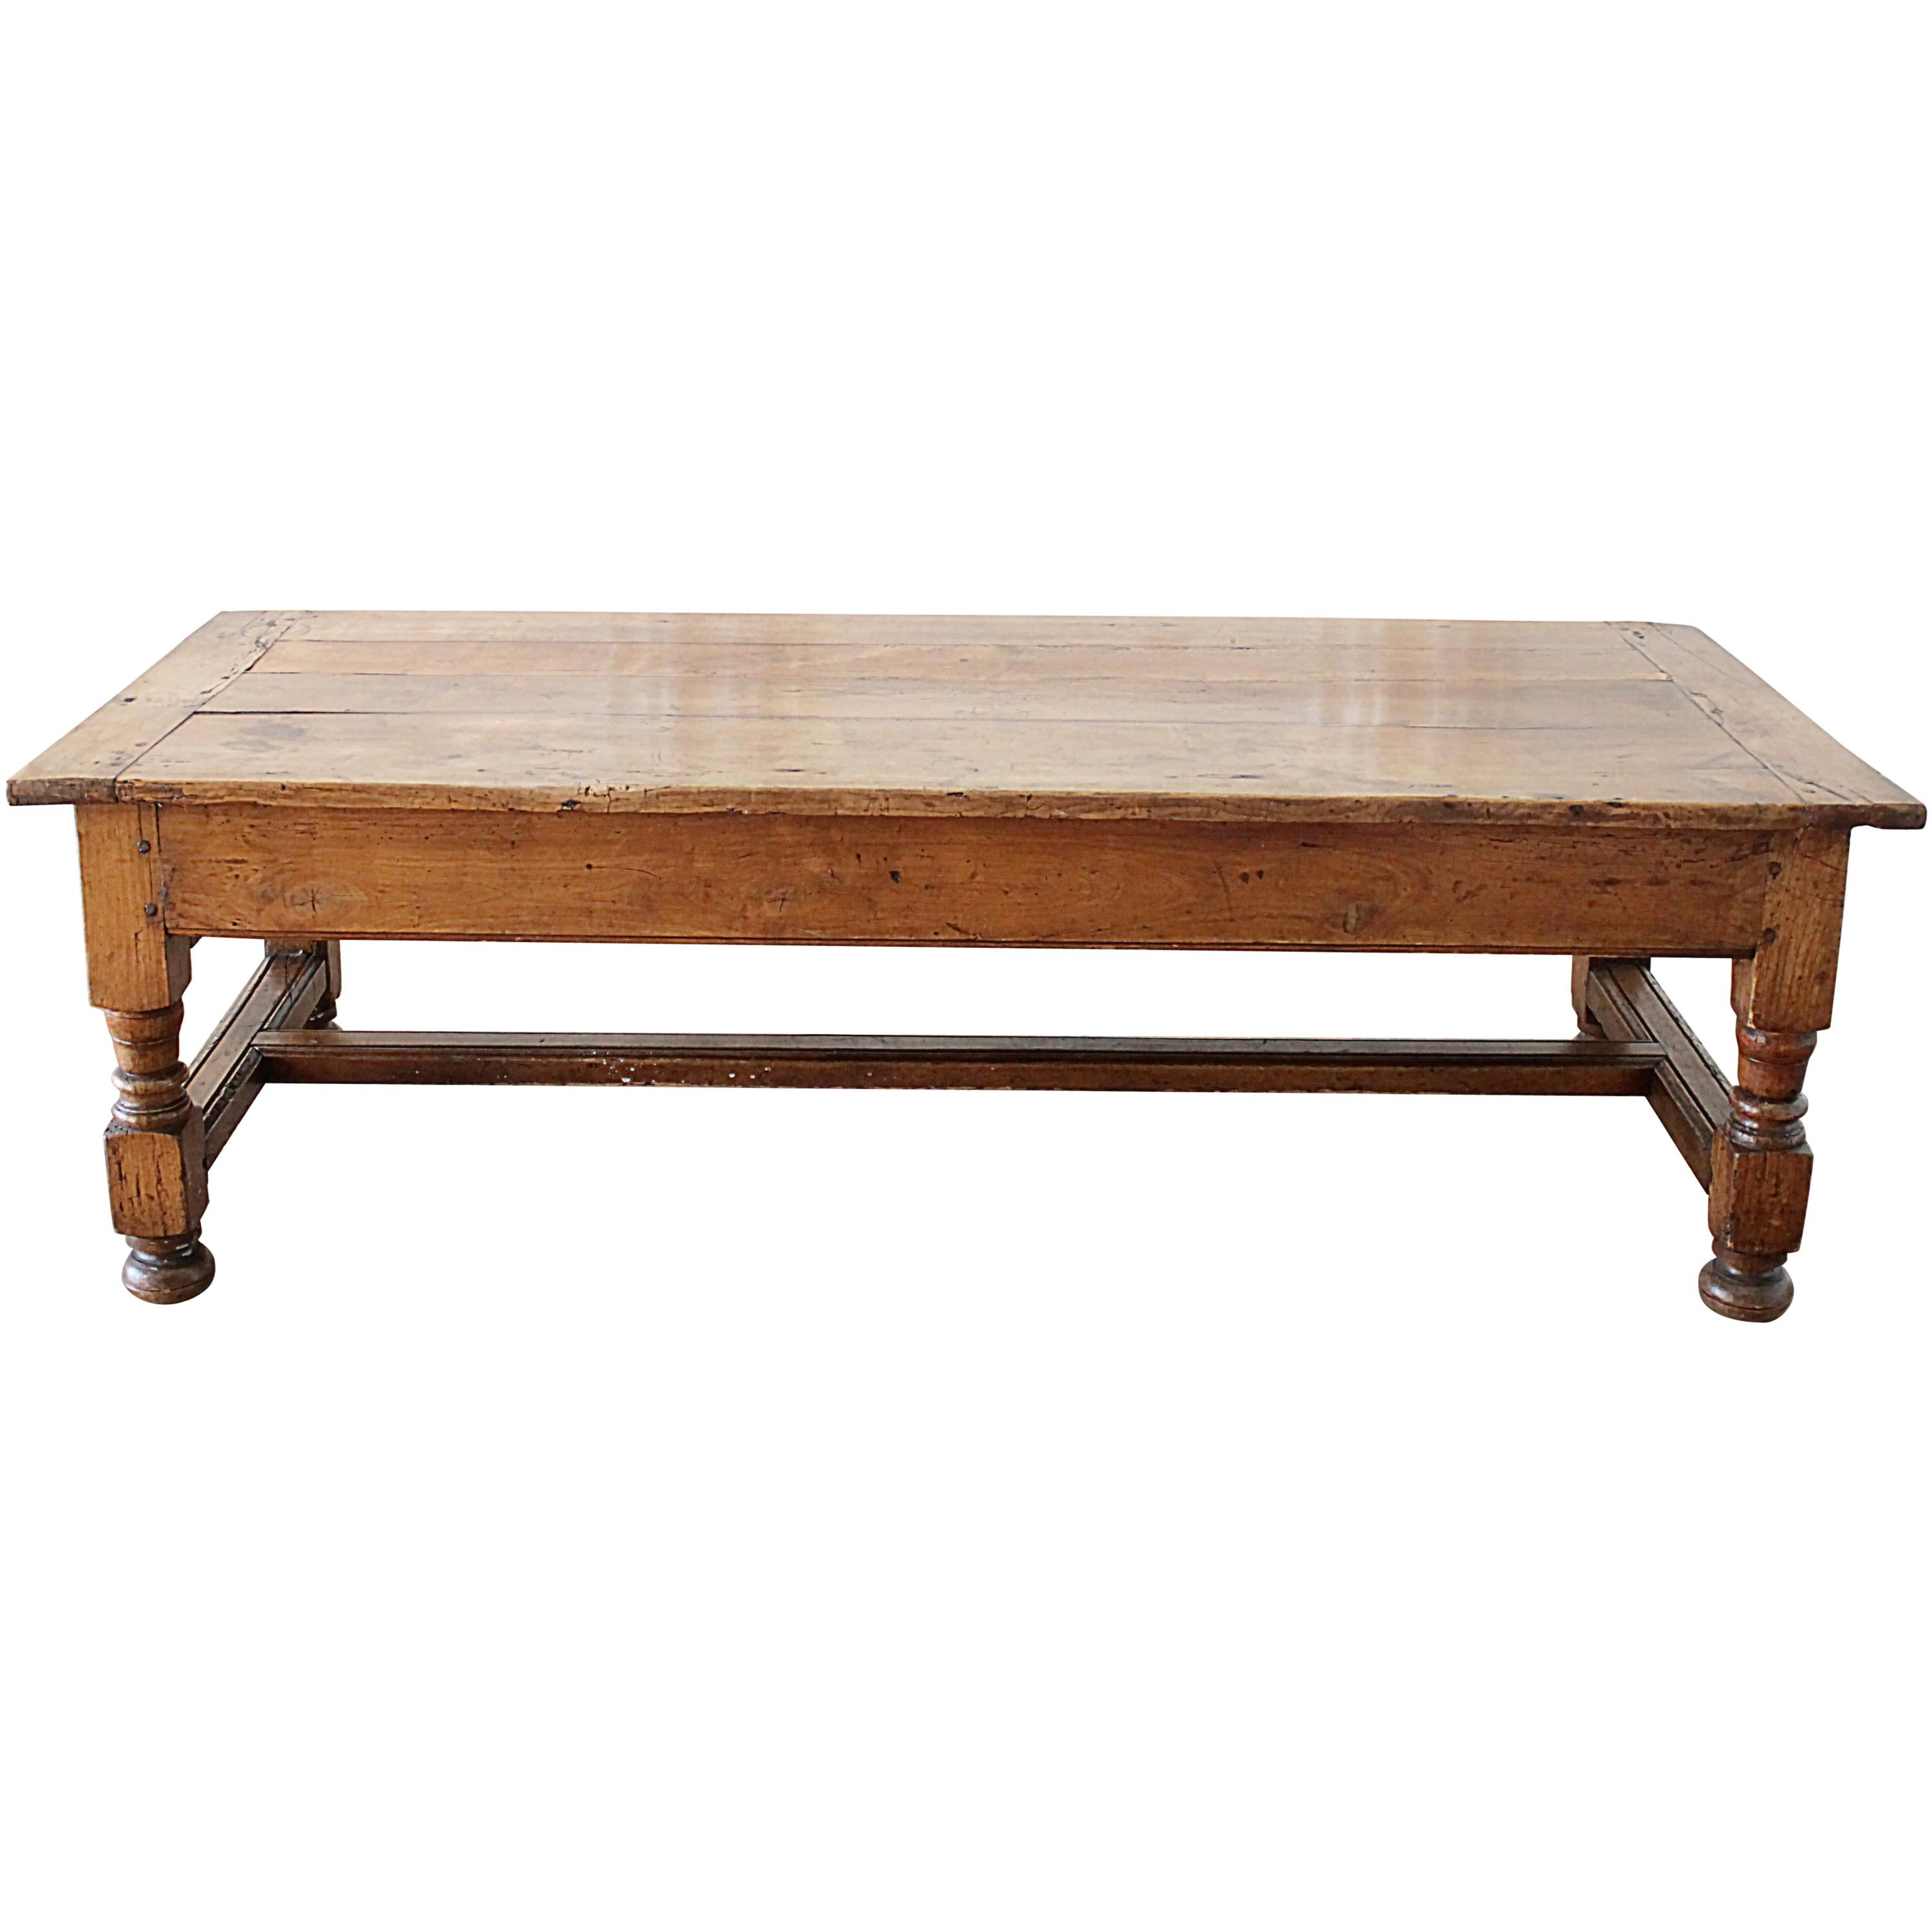 Merveilleux Antique Country French Farm Coffee Table With 2 Drawers